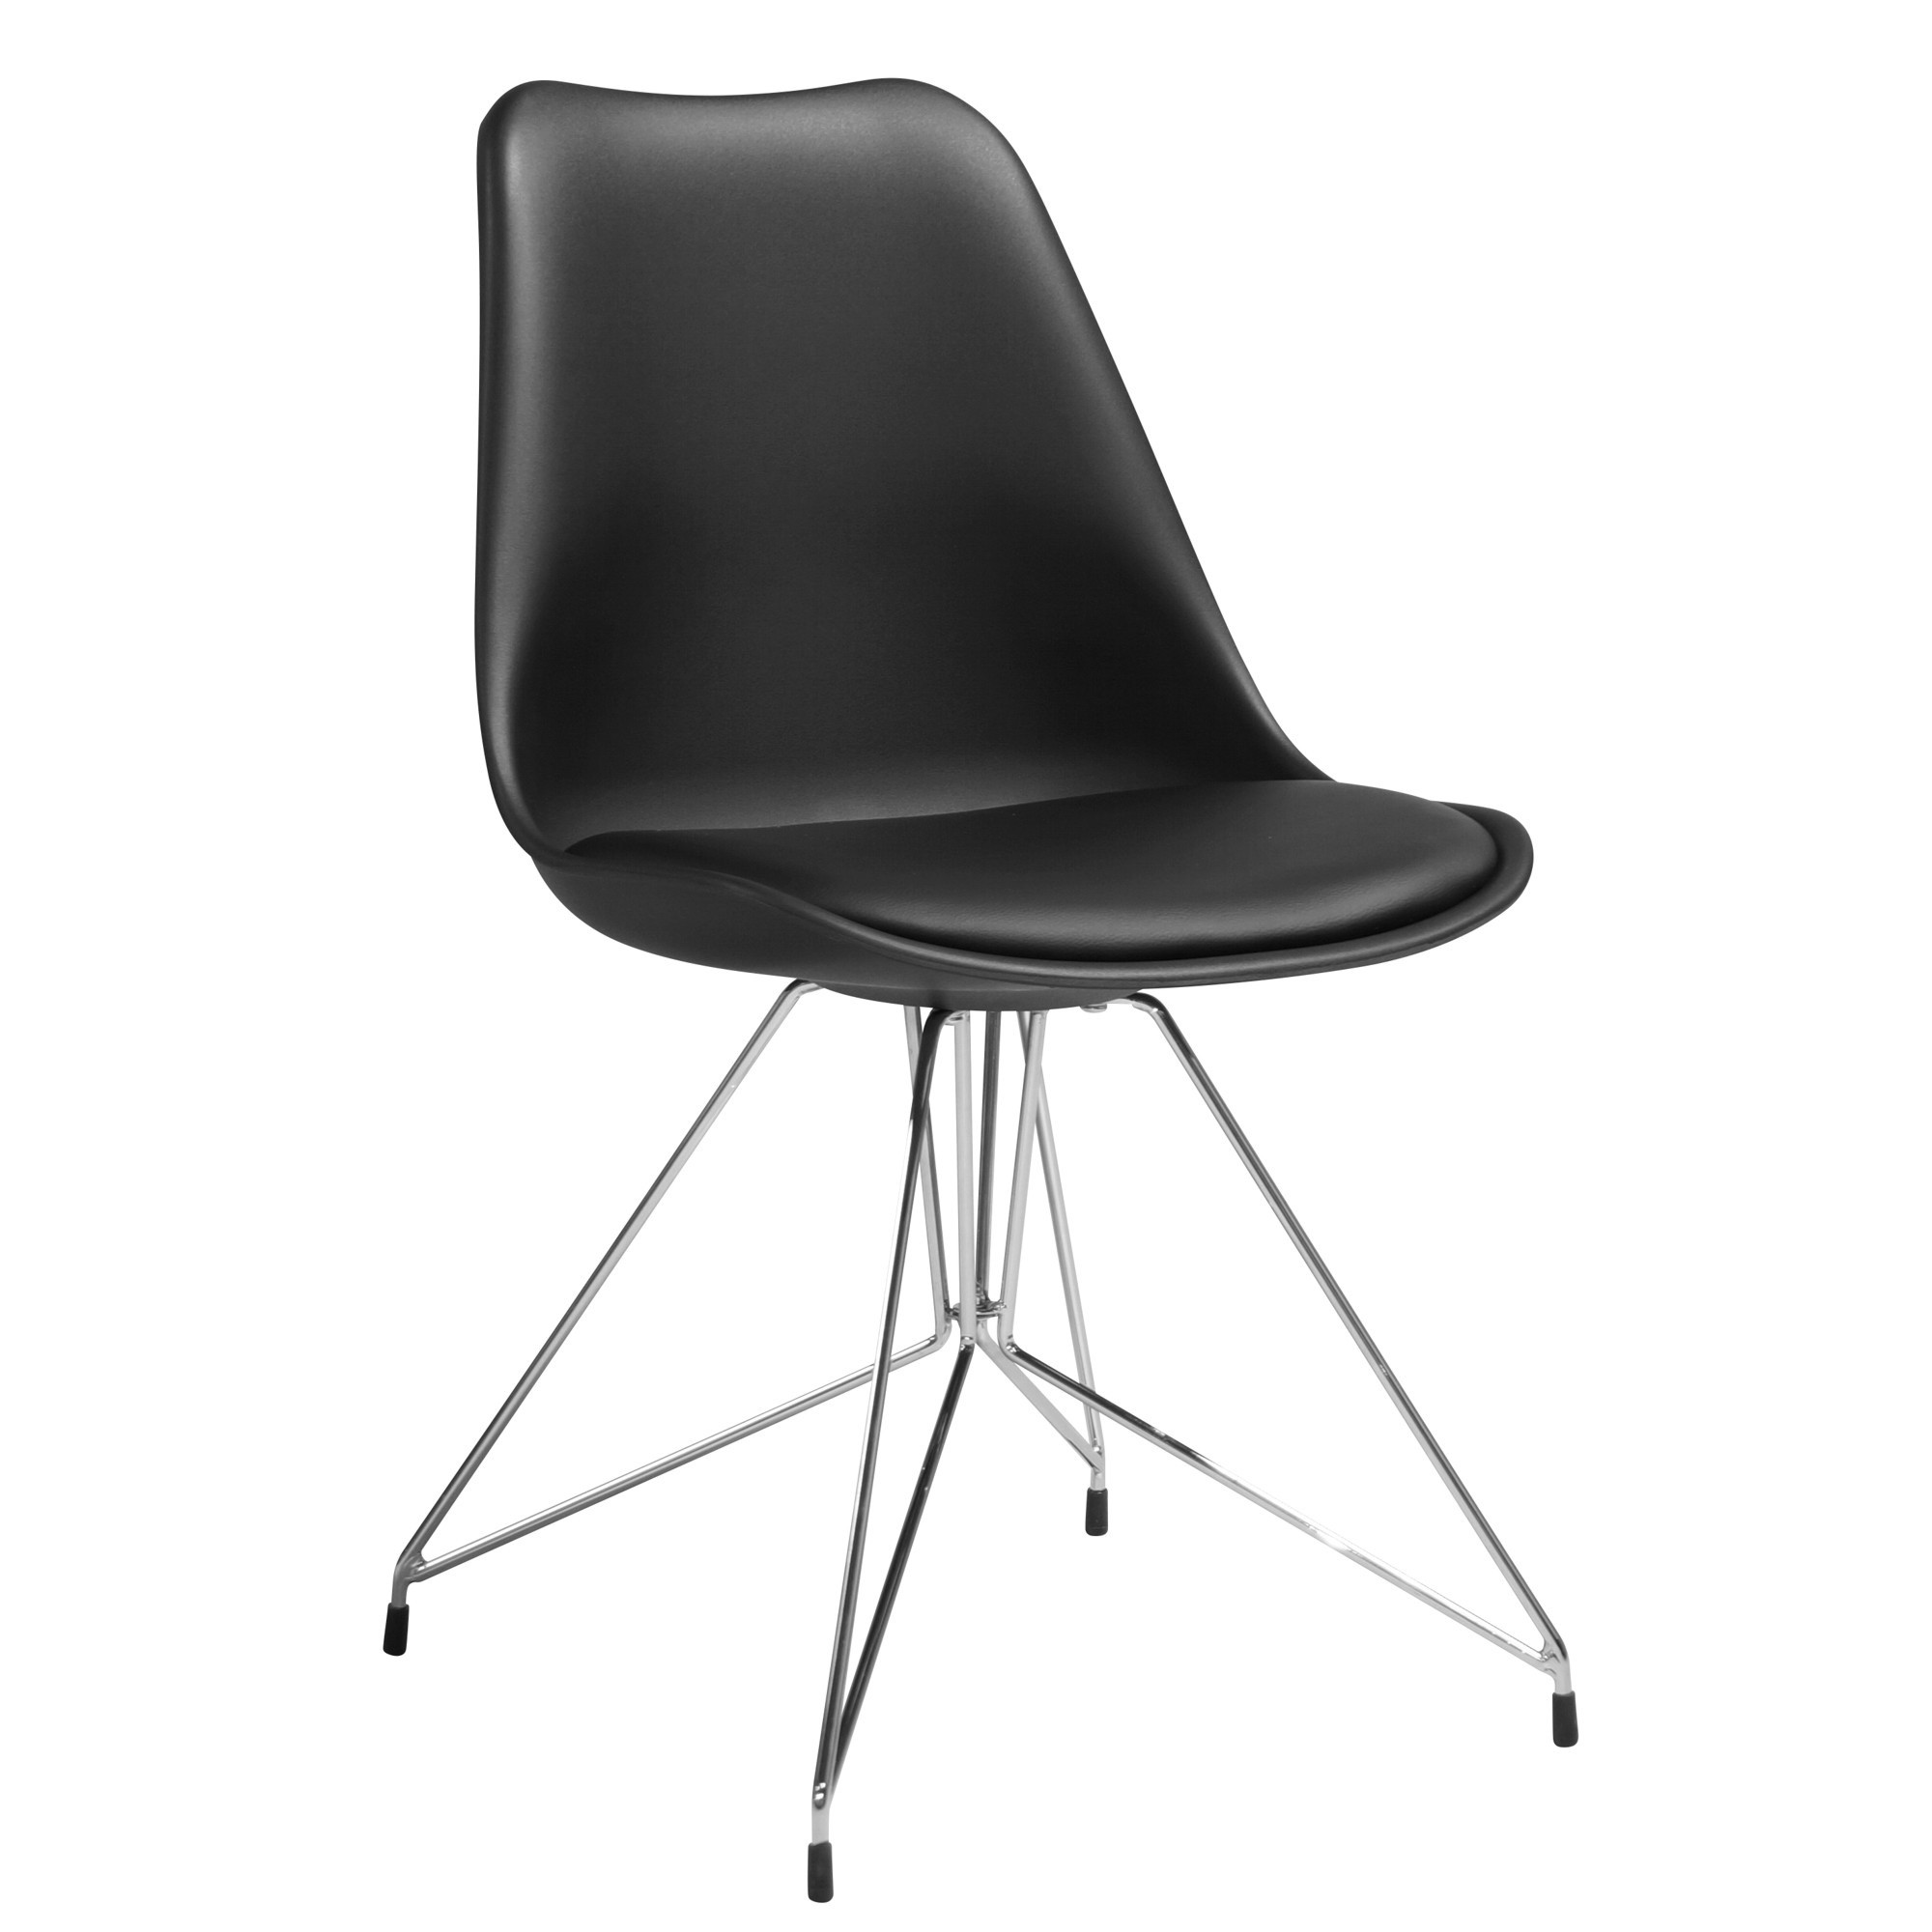 Soho Chair, Black / Silver